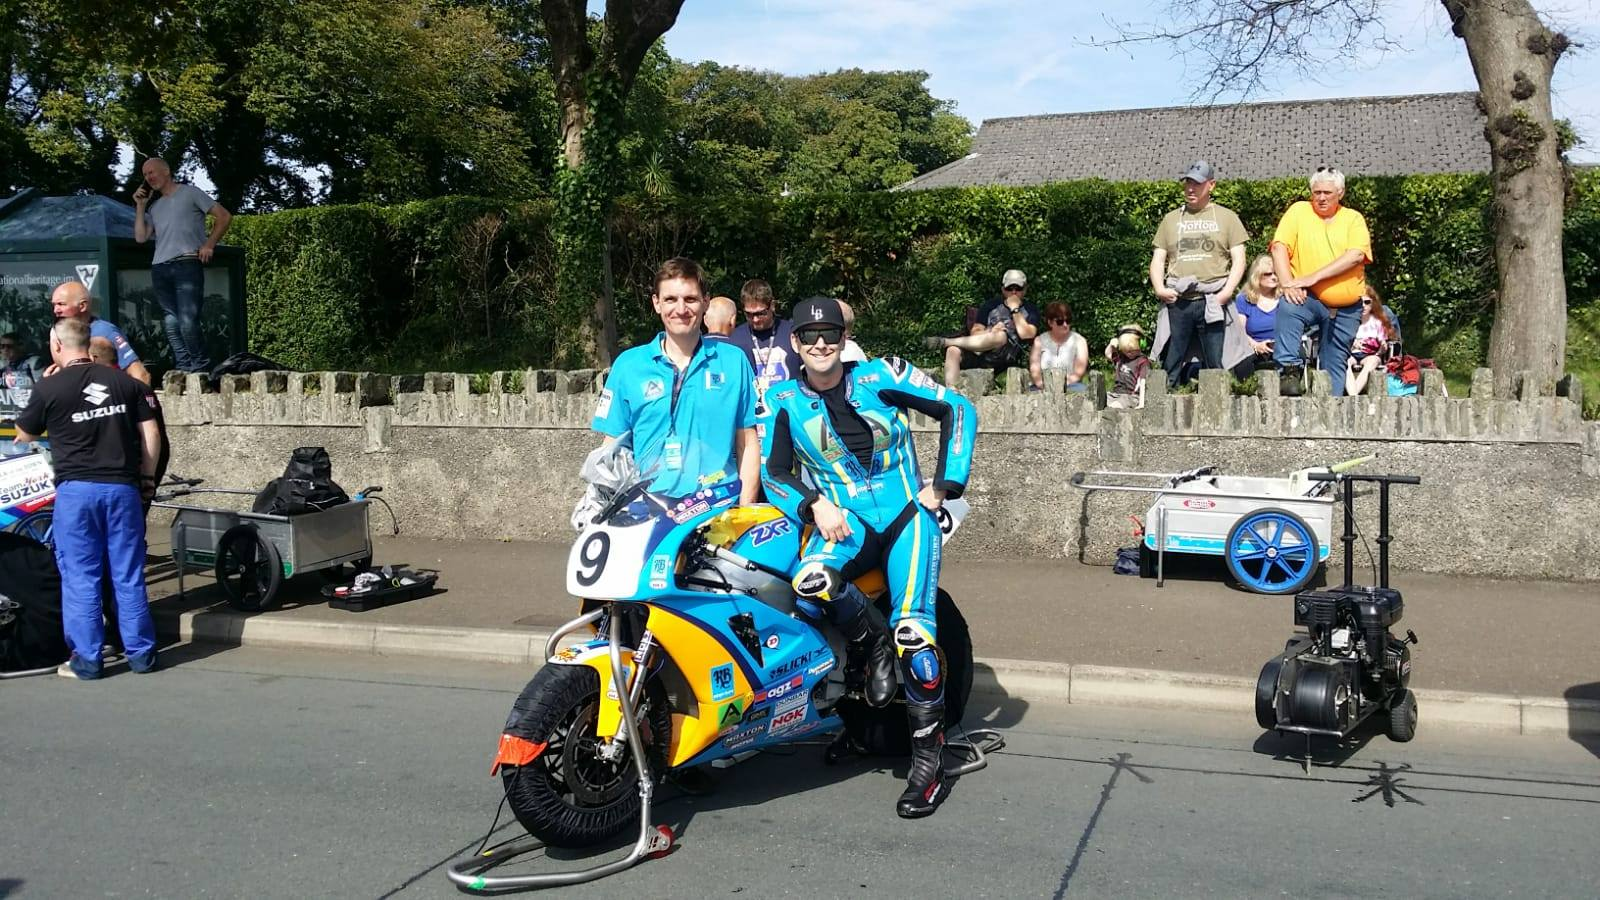 ACR and Dave Johnson 2019 Classic TT